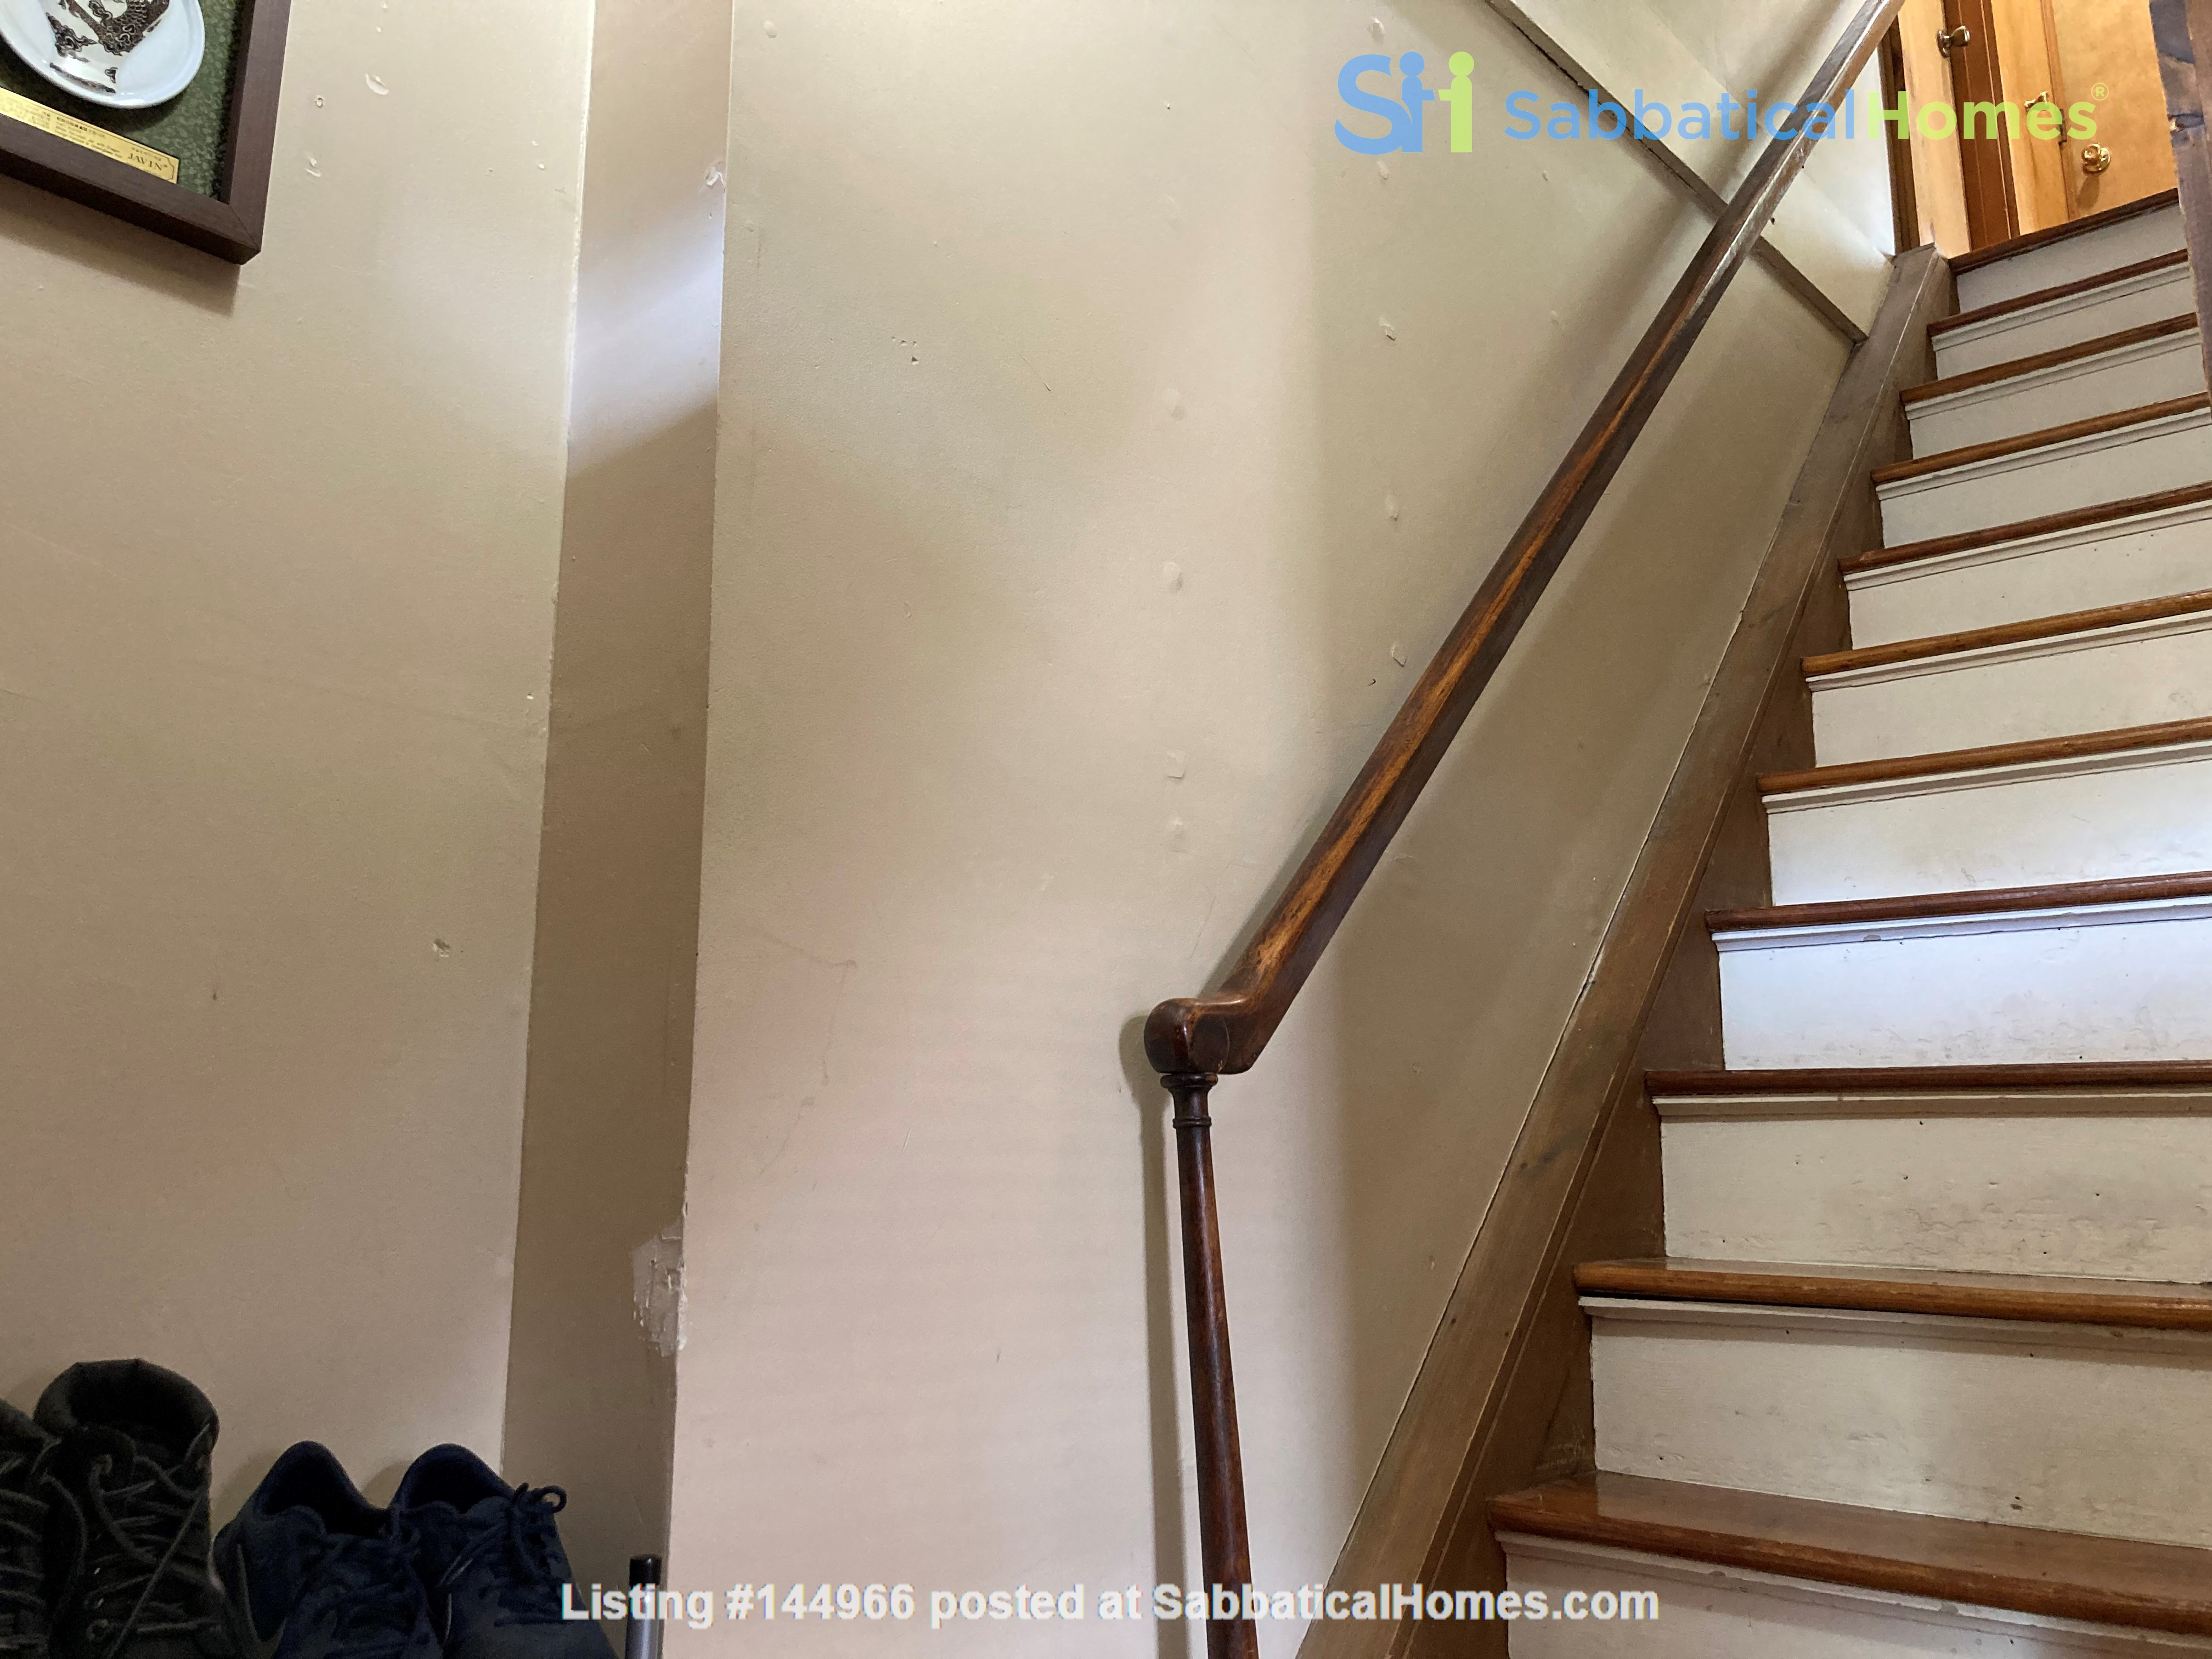 Two-Bedroom Apartment on Quiet Street; Walkable to Everything Northampton Home Rental in Northampton, Massachusetts, United States 2